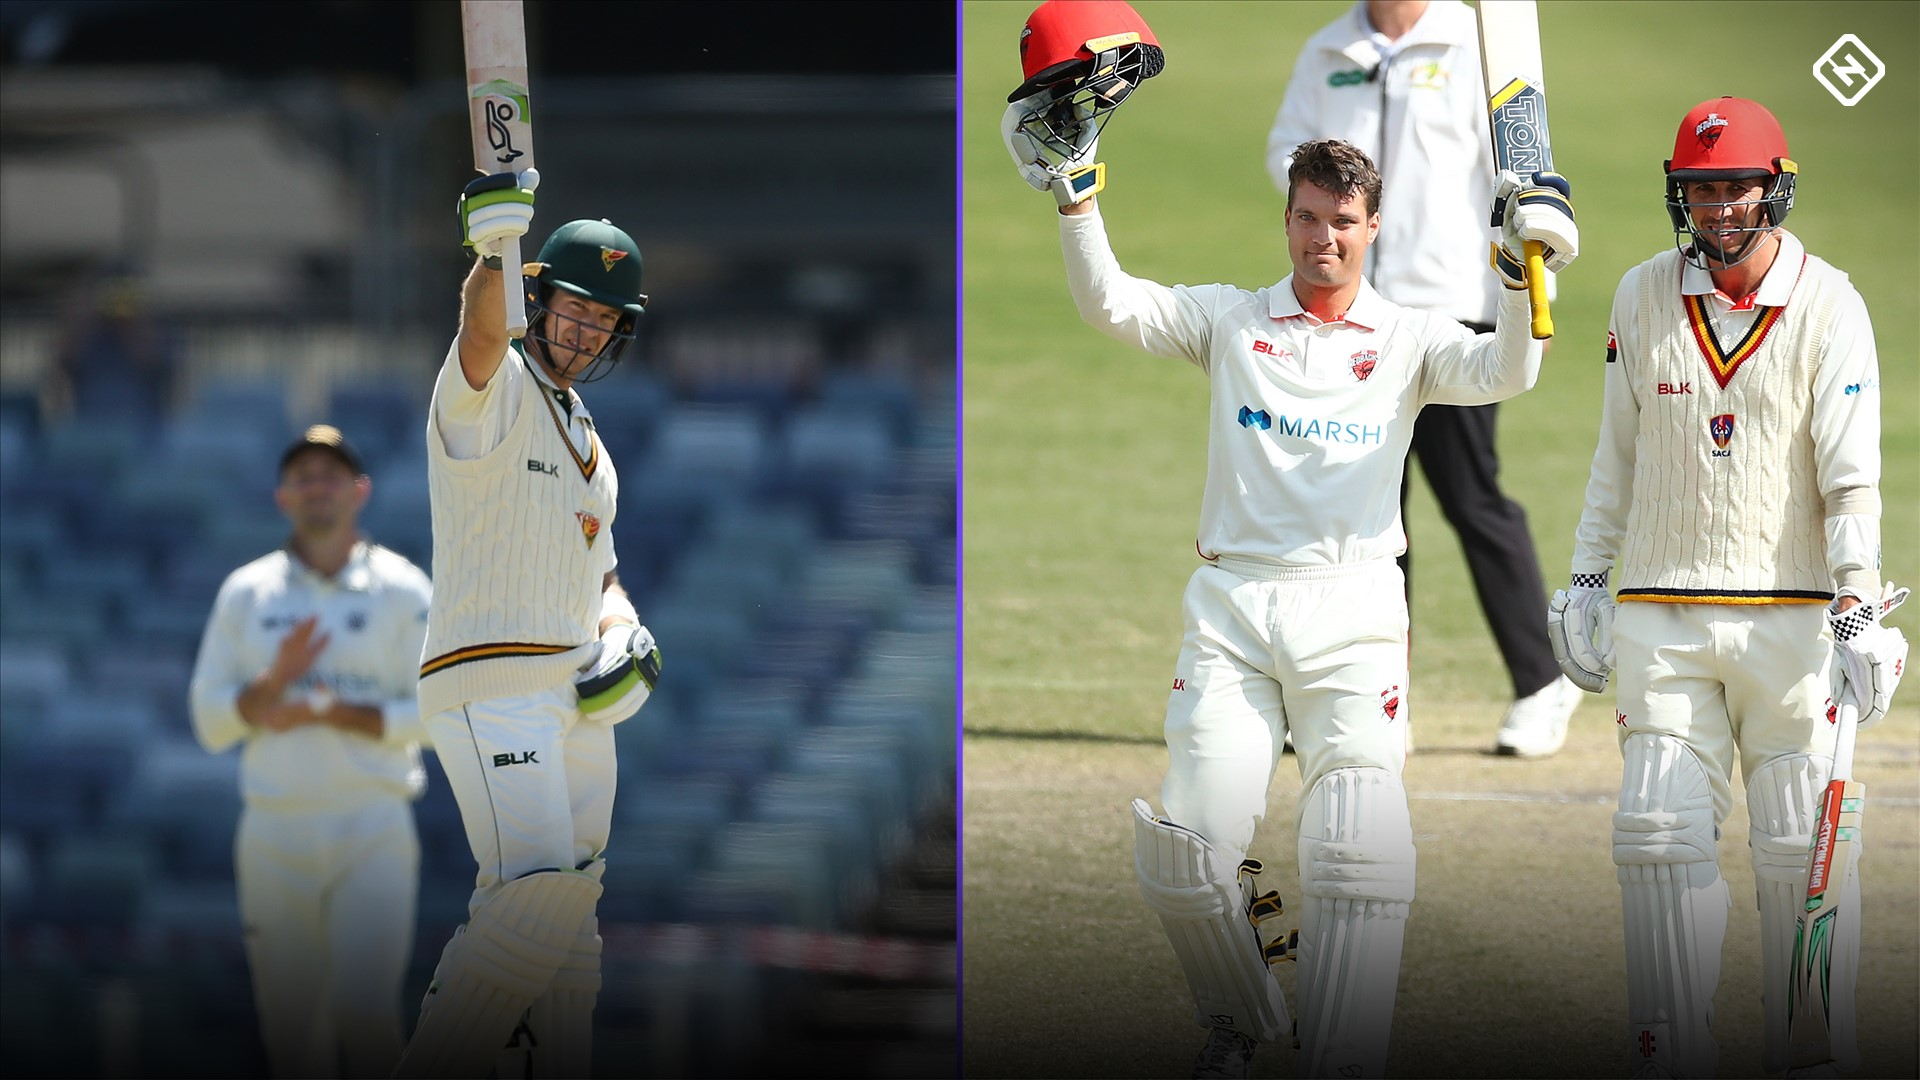 Sheffield Shield: Alex Carey and Tim Paine post centuries as batsmen continue to dominate